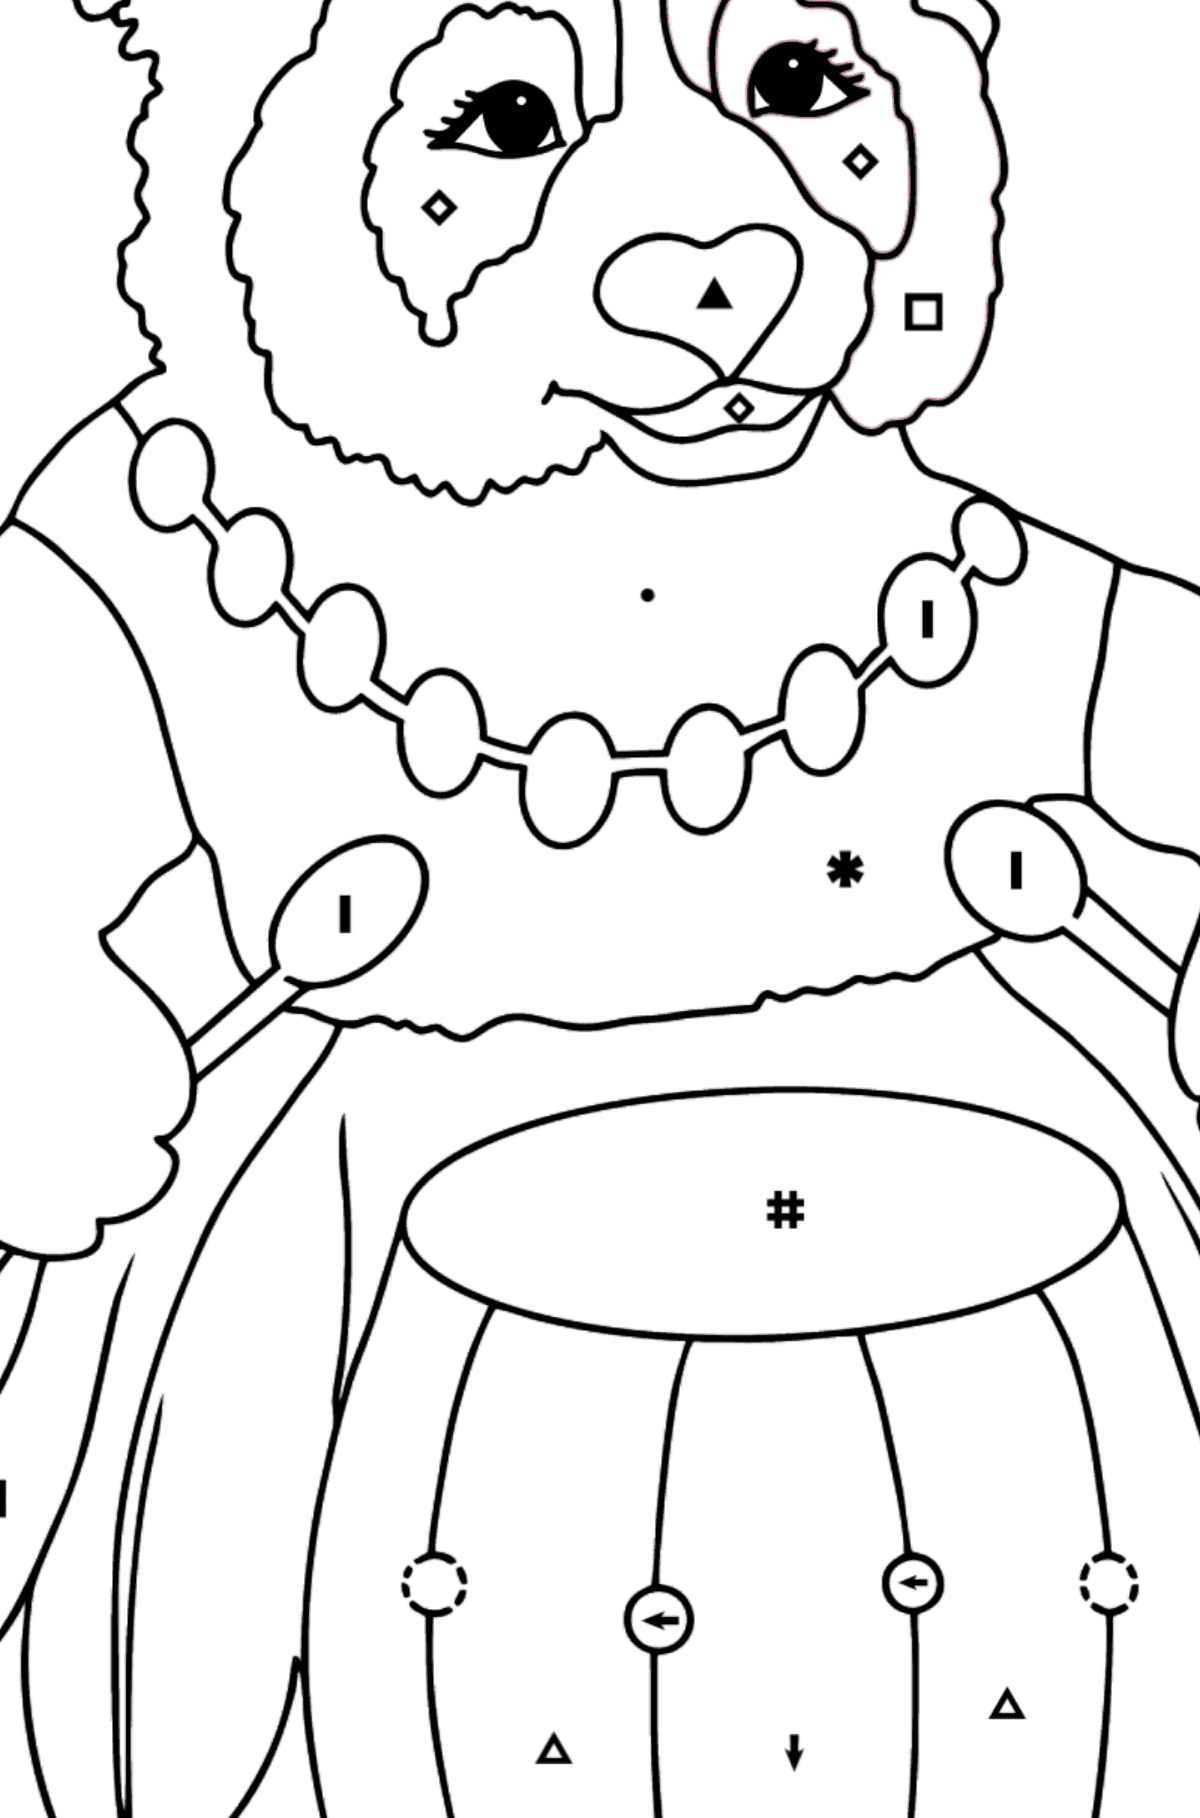 Coloring Page - A Panda and a Drum - Coloring by Symbols for Kids